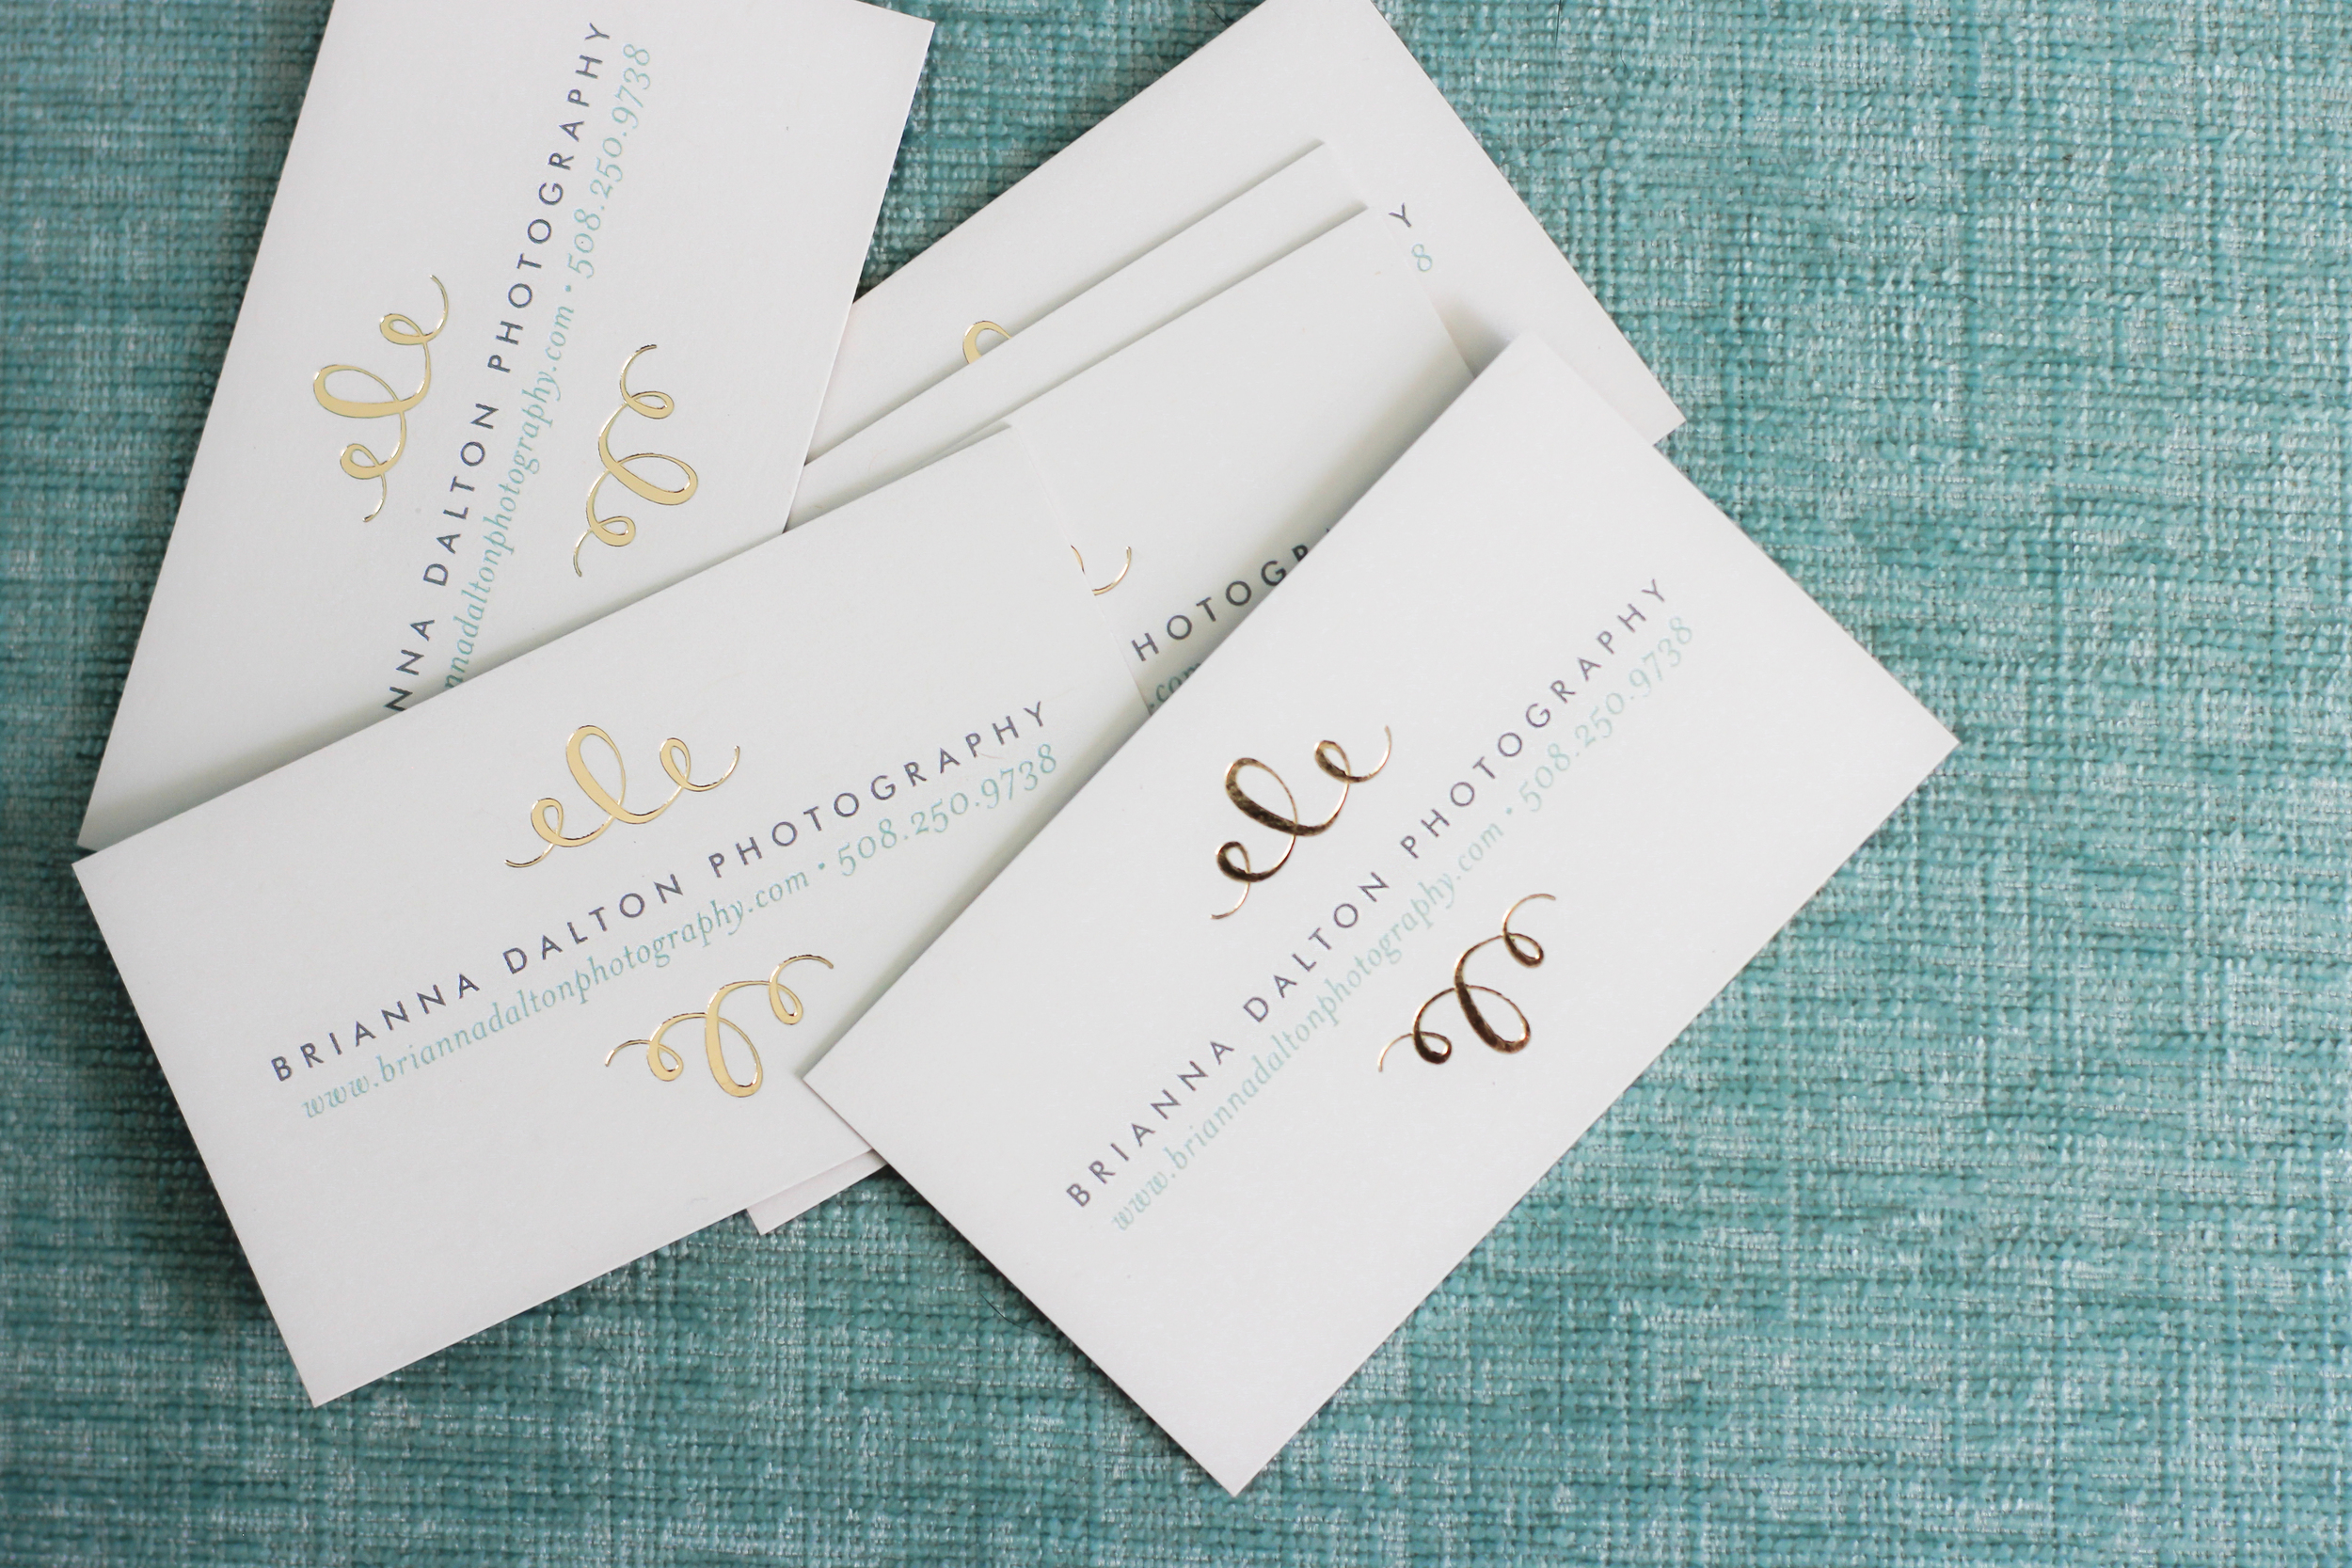 100% recycled sustainable business cards, courtesy of  Minted.com